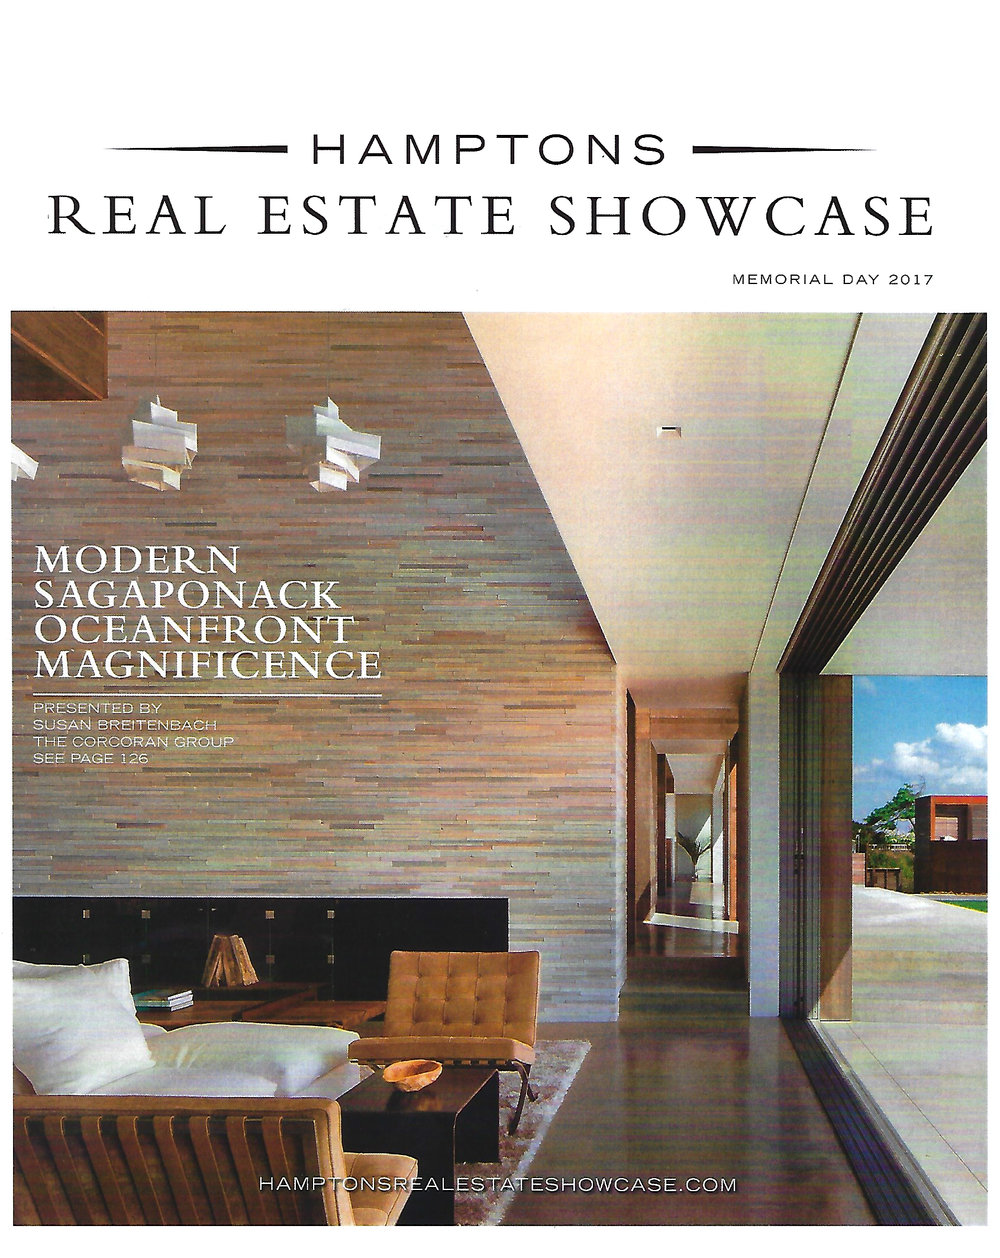 Hamptons Real Estate Showcase - Outdoor Living in the Hamptons_cover_May 2017.jpg